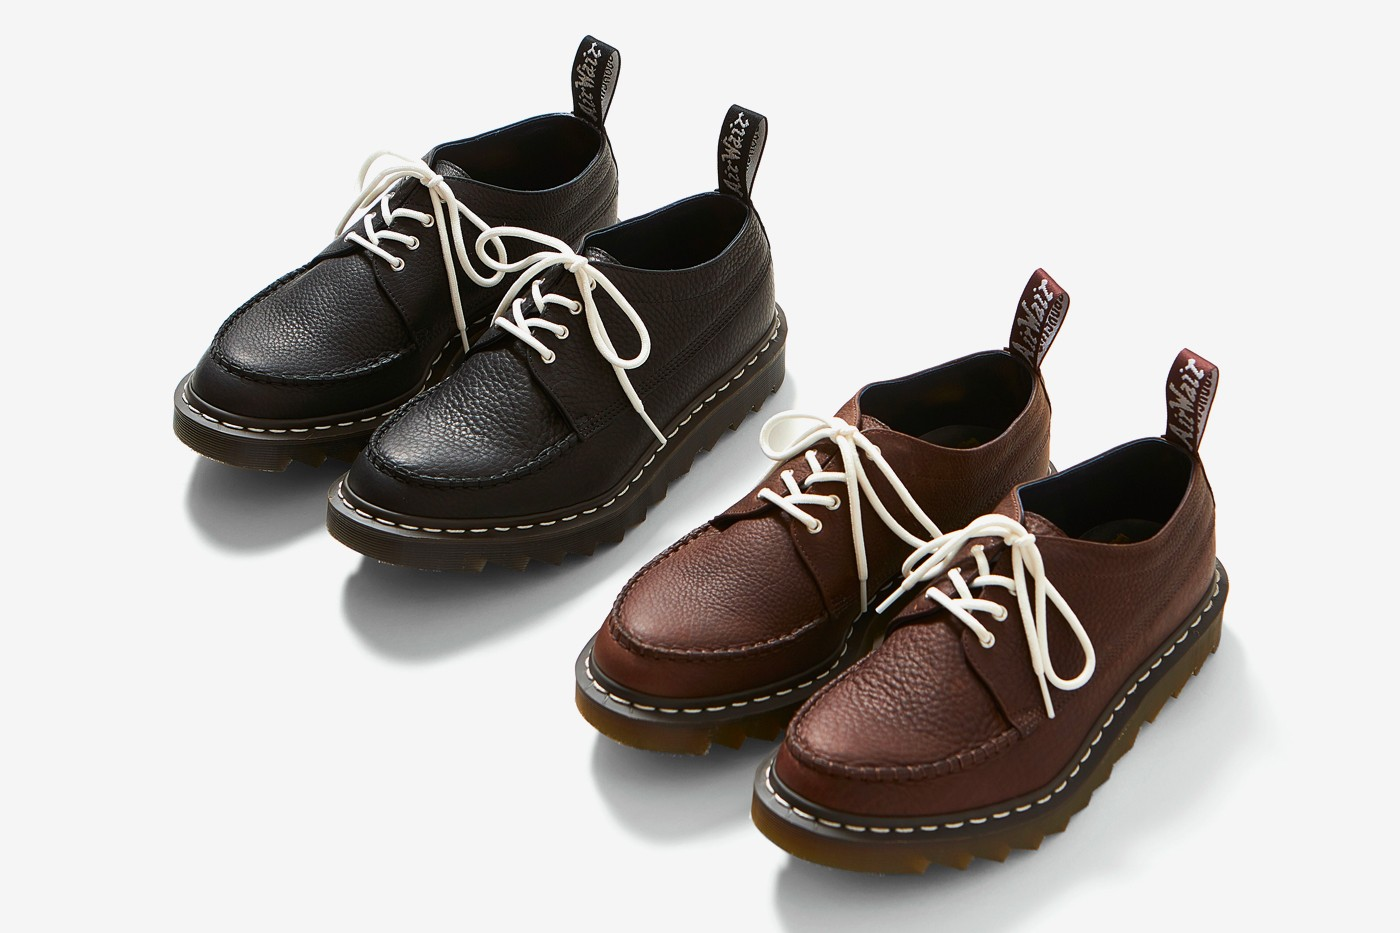 nanamica x Dr. Martens Camberwell MIE